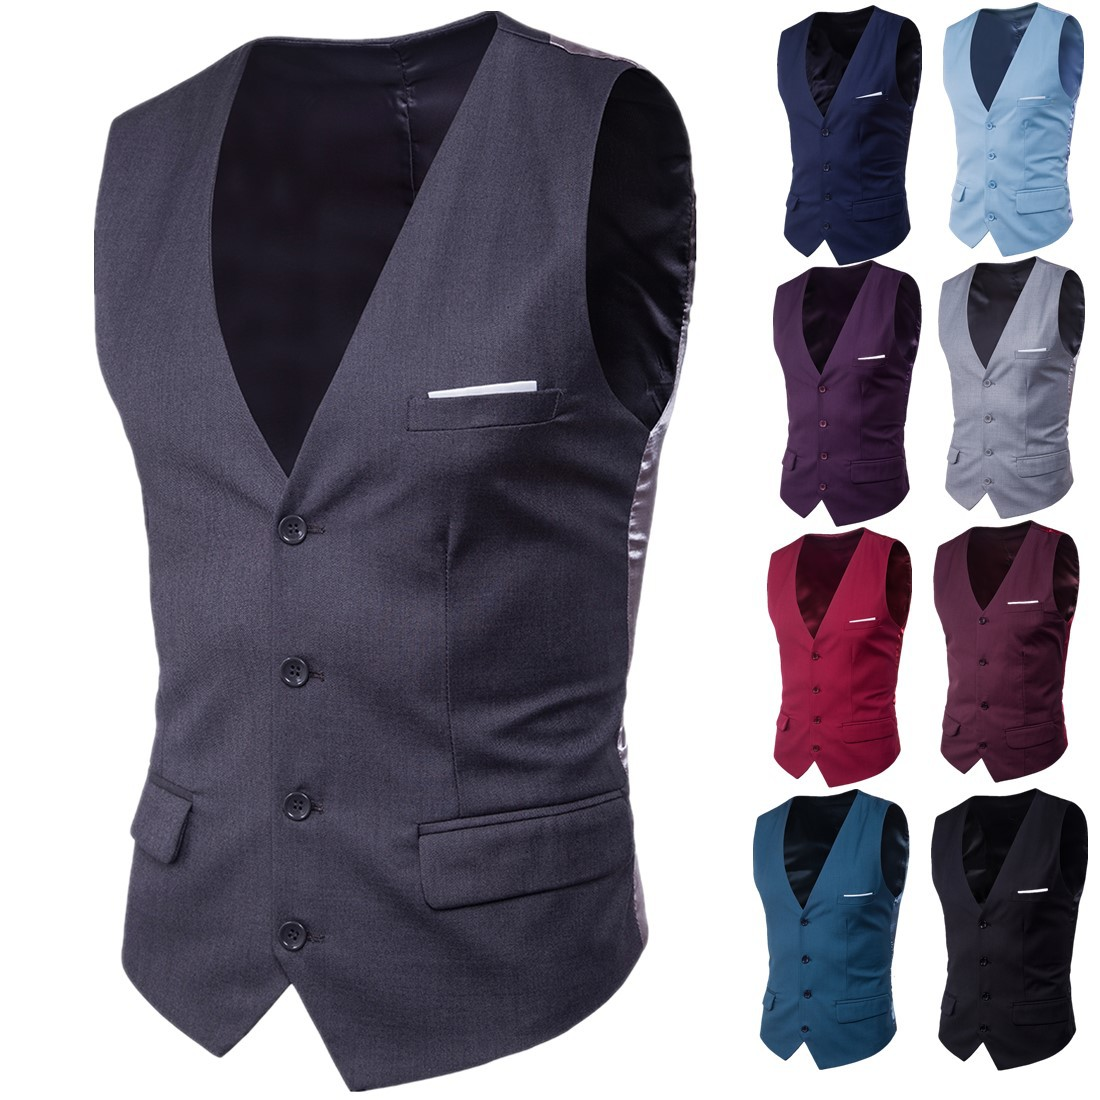 1032f93c9cd 2018 Men Suit Jacket Sleeveless Gray Black Vintage Vest Fashion ...